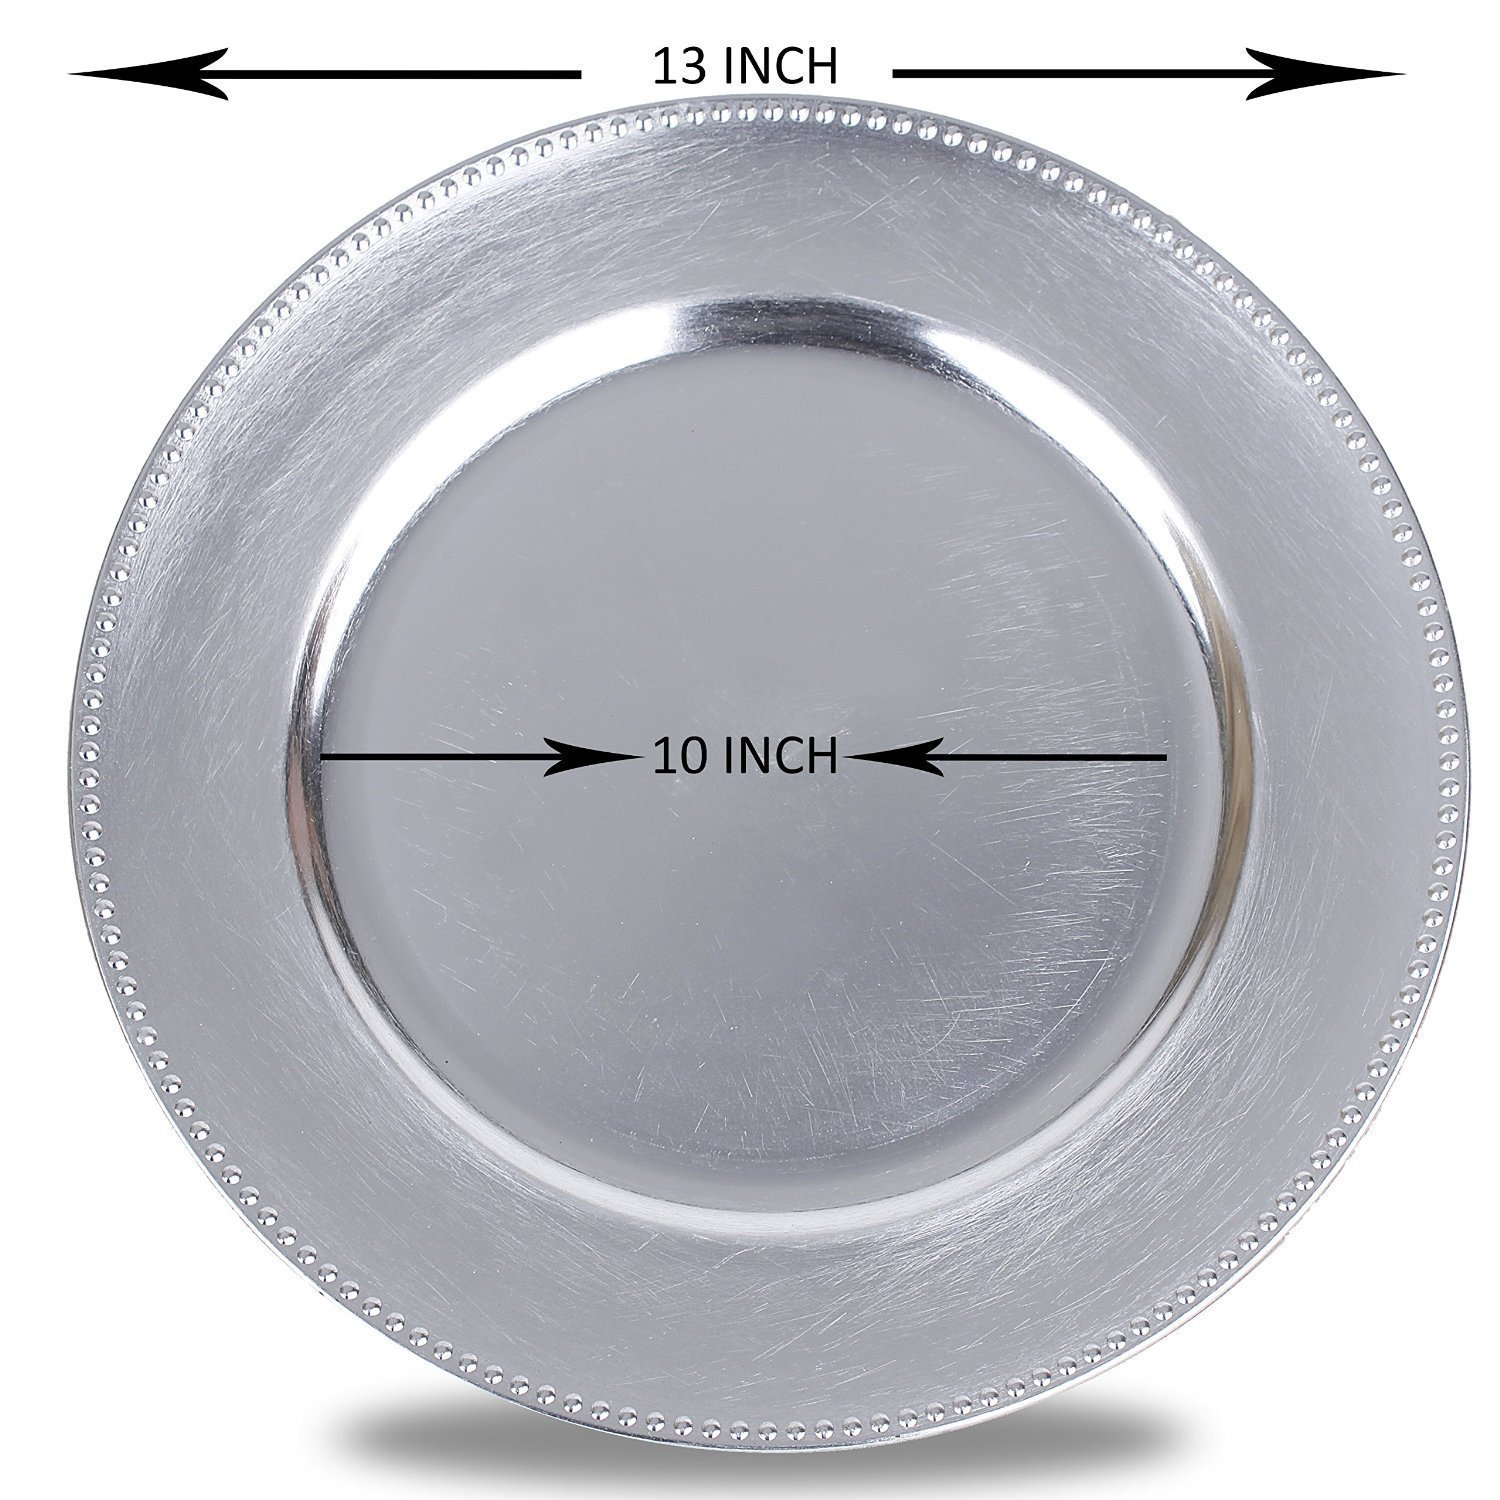 Round Charger Beaded Dinner Plates, Silver 13 inch, Set of 1,2,4,6, or 12 (12)